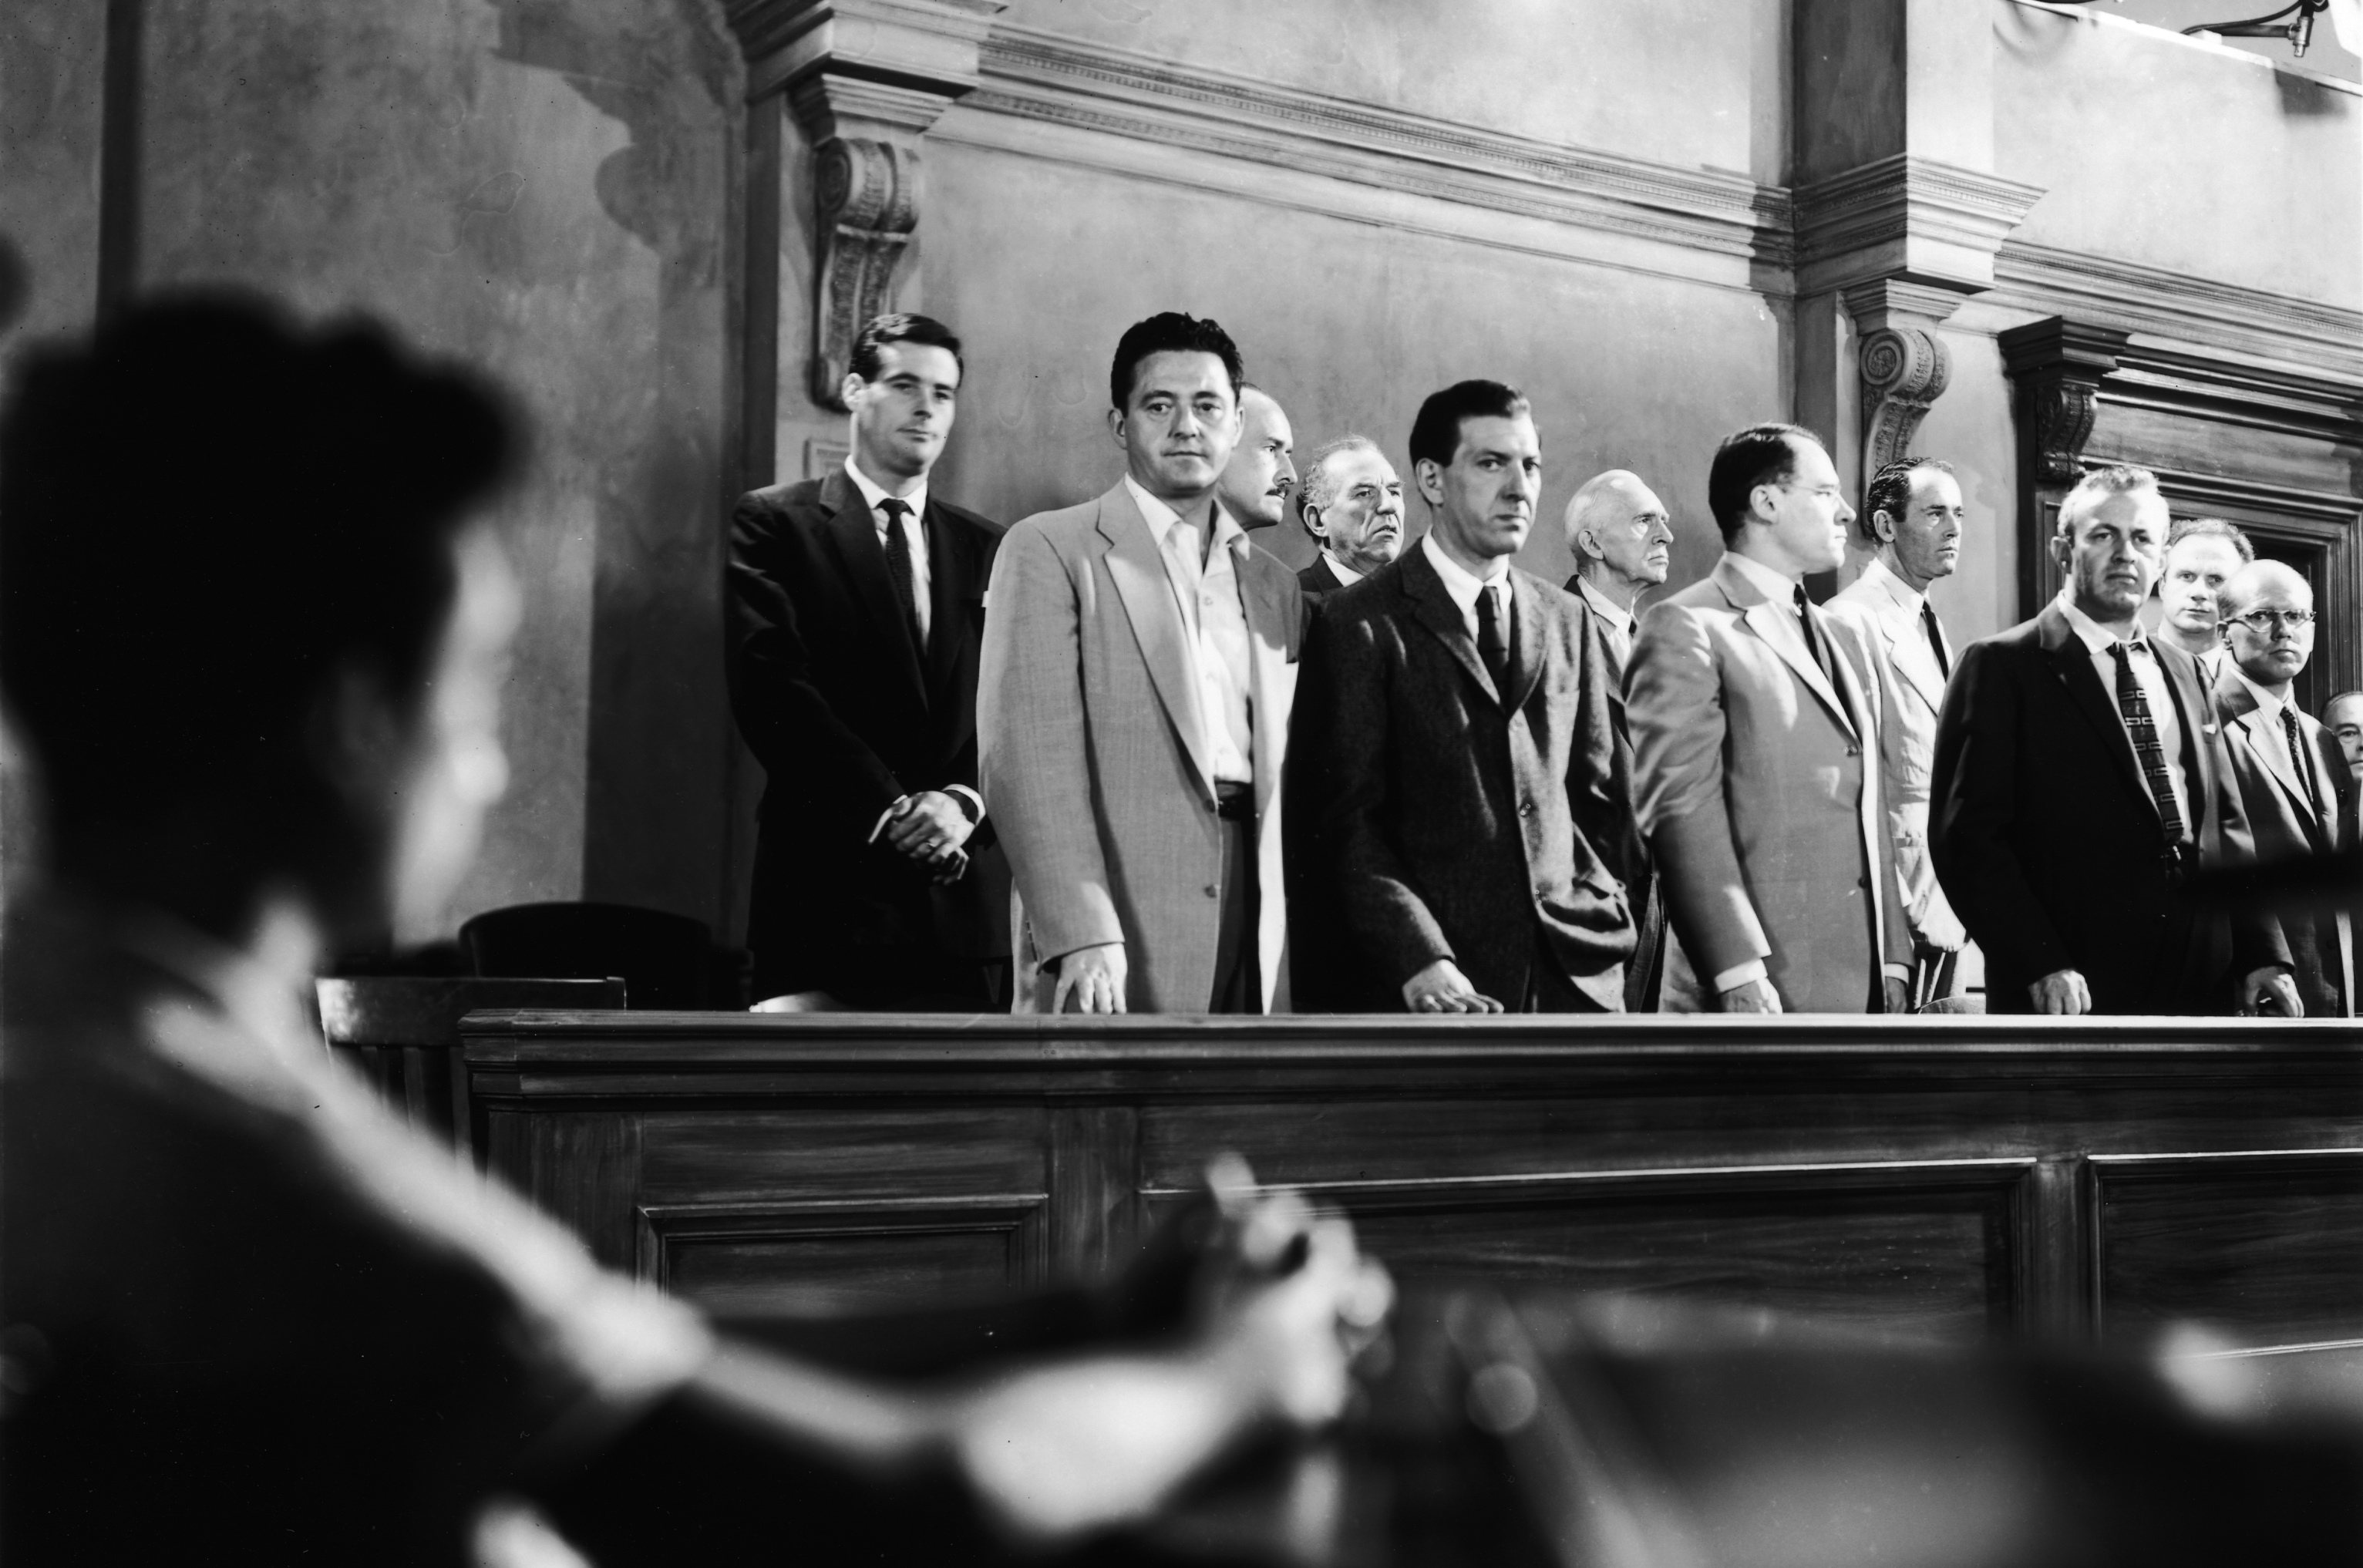 an analysis of the jury in the film called twelve angry men